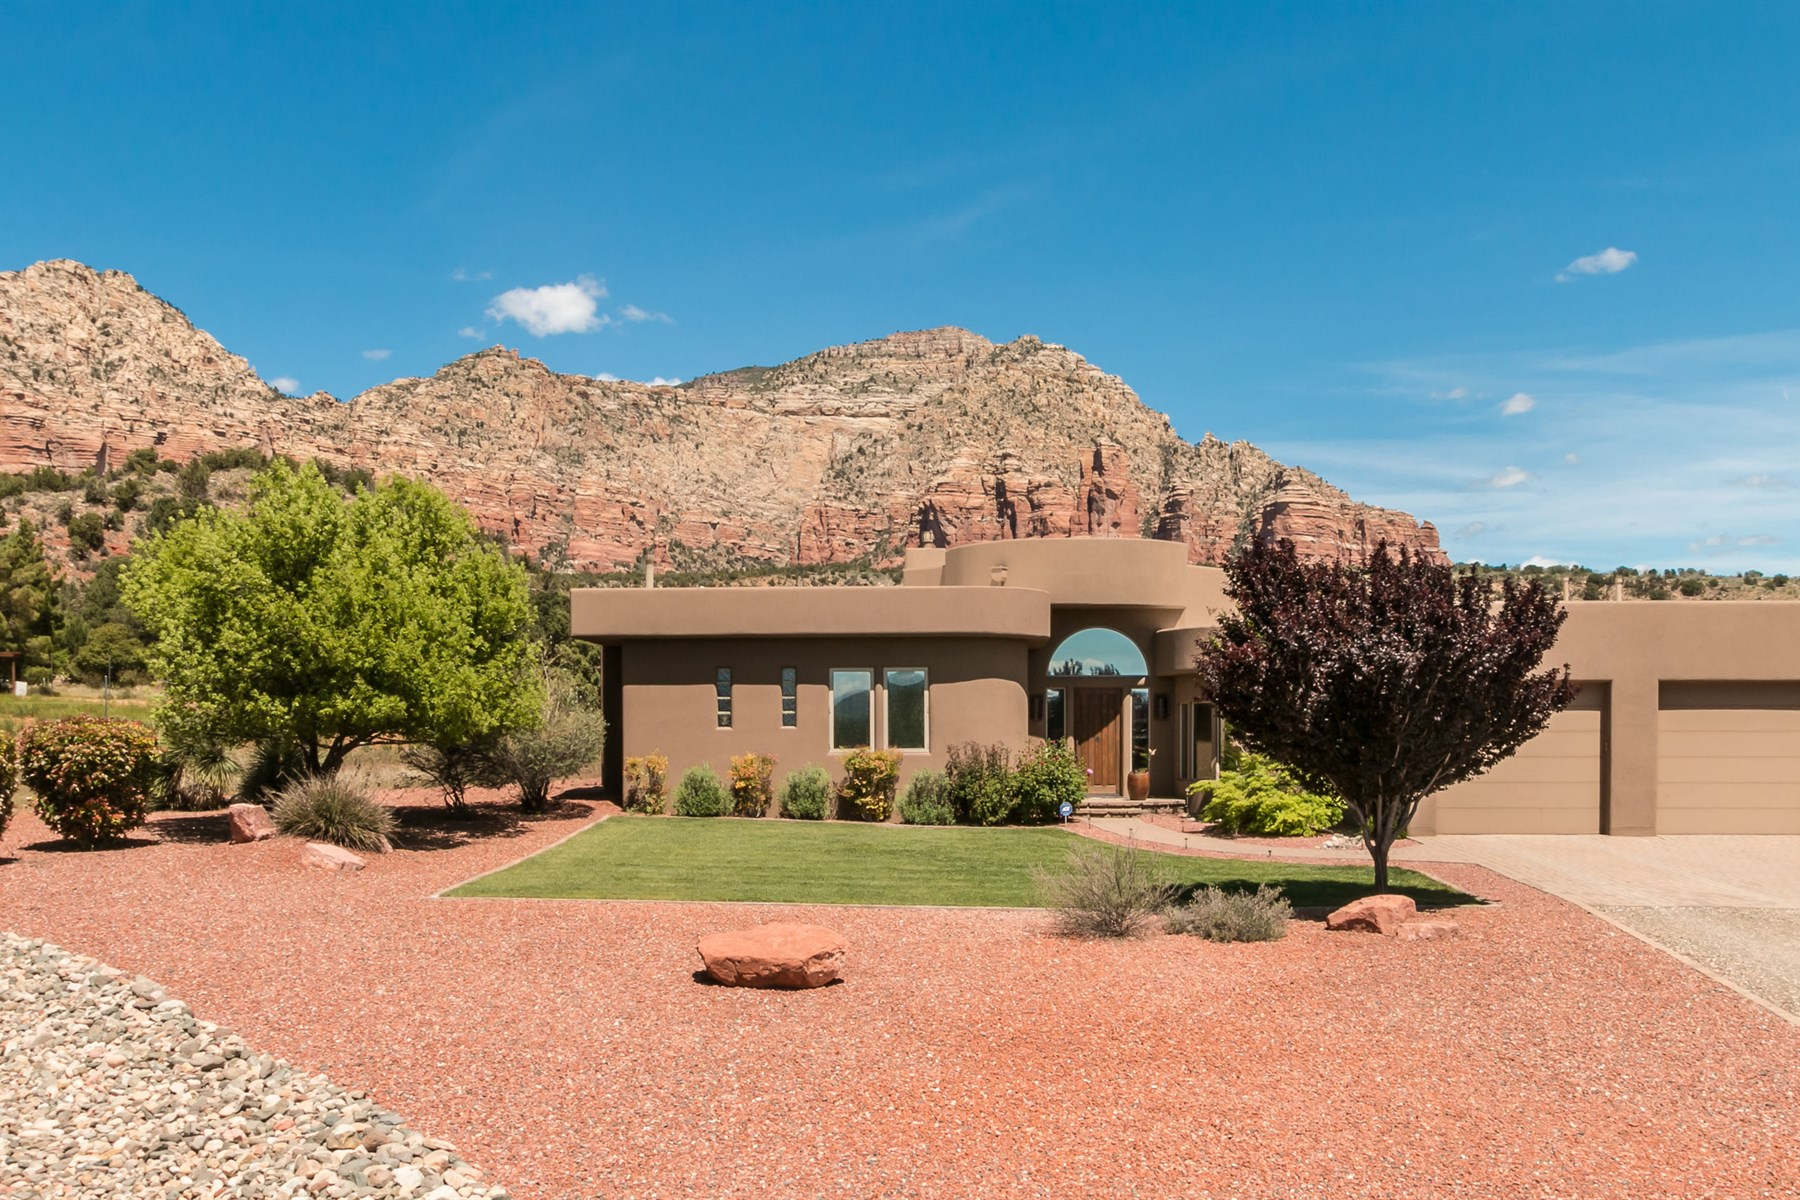 Single Family Home for Sale at Southwestern with a modern flair 90 Sunbeam Acres Lane Sedona, Arizona, 86351 United States